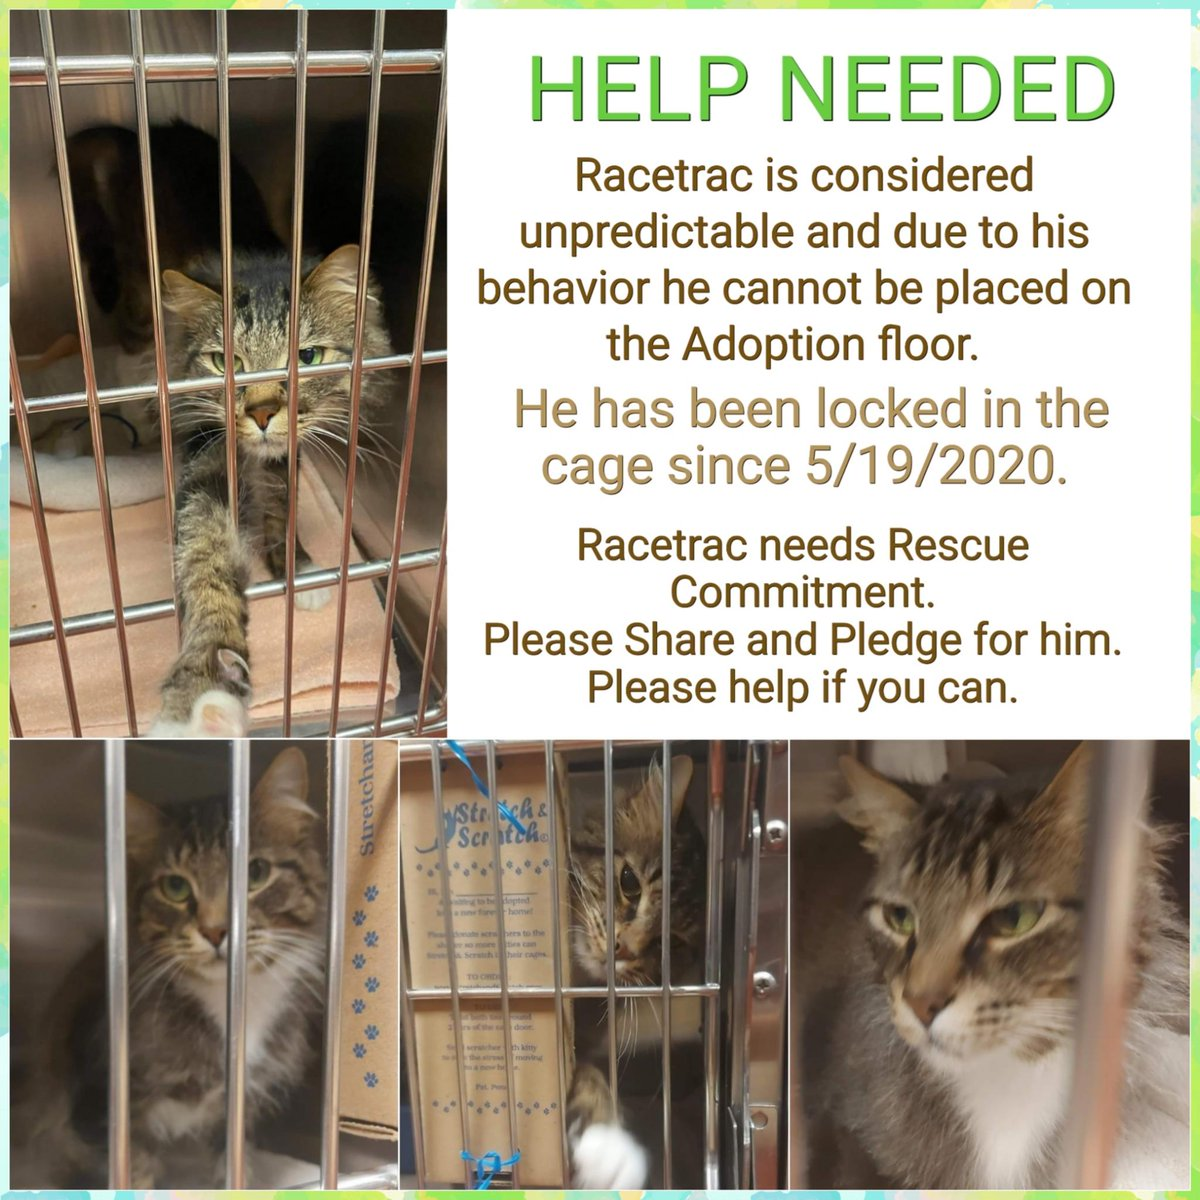 """Tabby boy kitty Racetrac at #CobbCounty in #MariettaGA is enormously good-looking but """"unpredictable"""" so will need a special kind of adopter! Poor guy has been in that tiny cage for almost 4 months! Adopt! Pledge for rescue! Phone: (770) 499-4136 URGENT!  https://t.co/1dRWer7Mdc https://t.co/YuQkNAdCG4"""